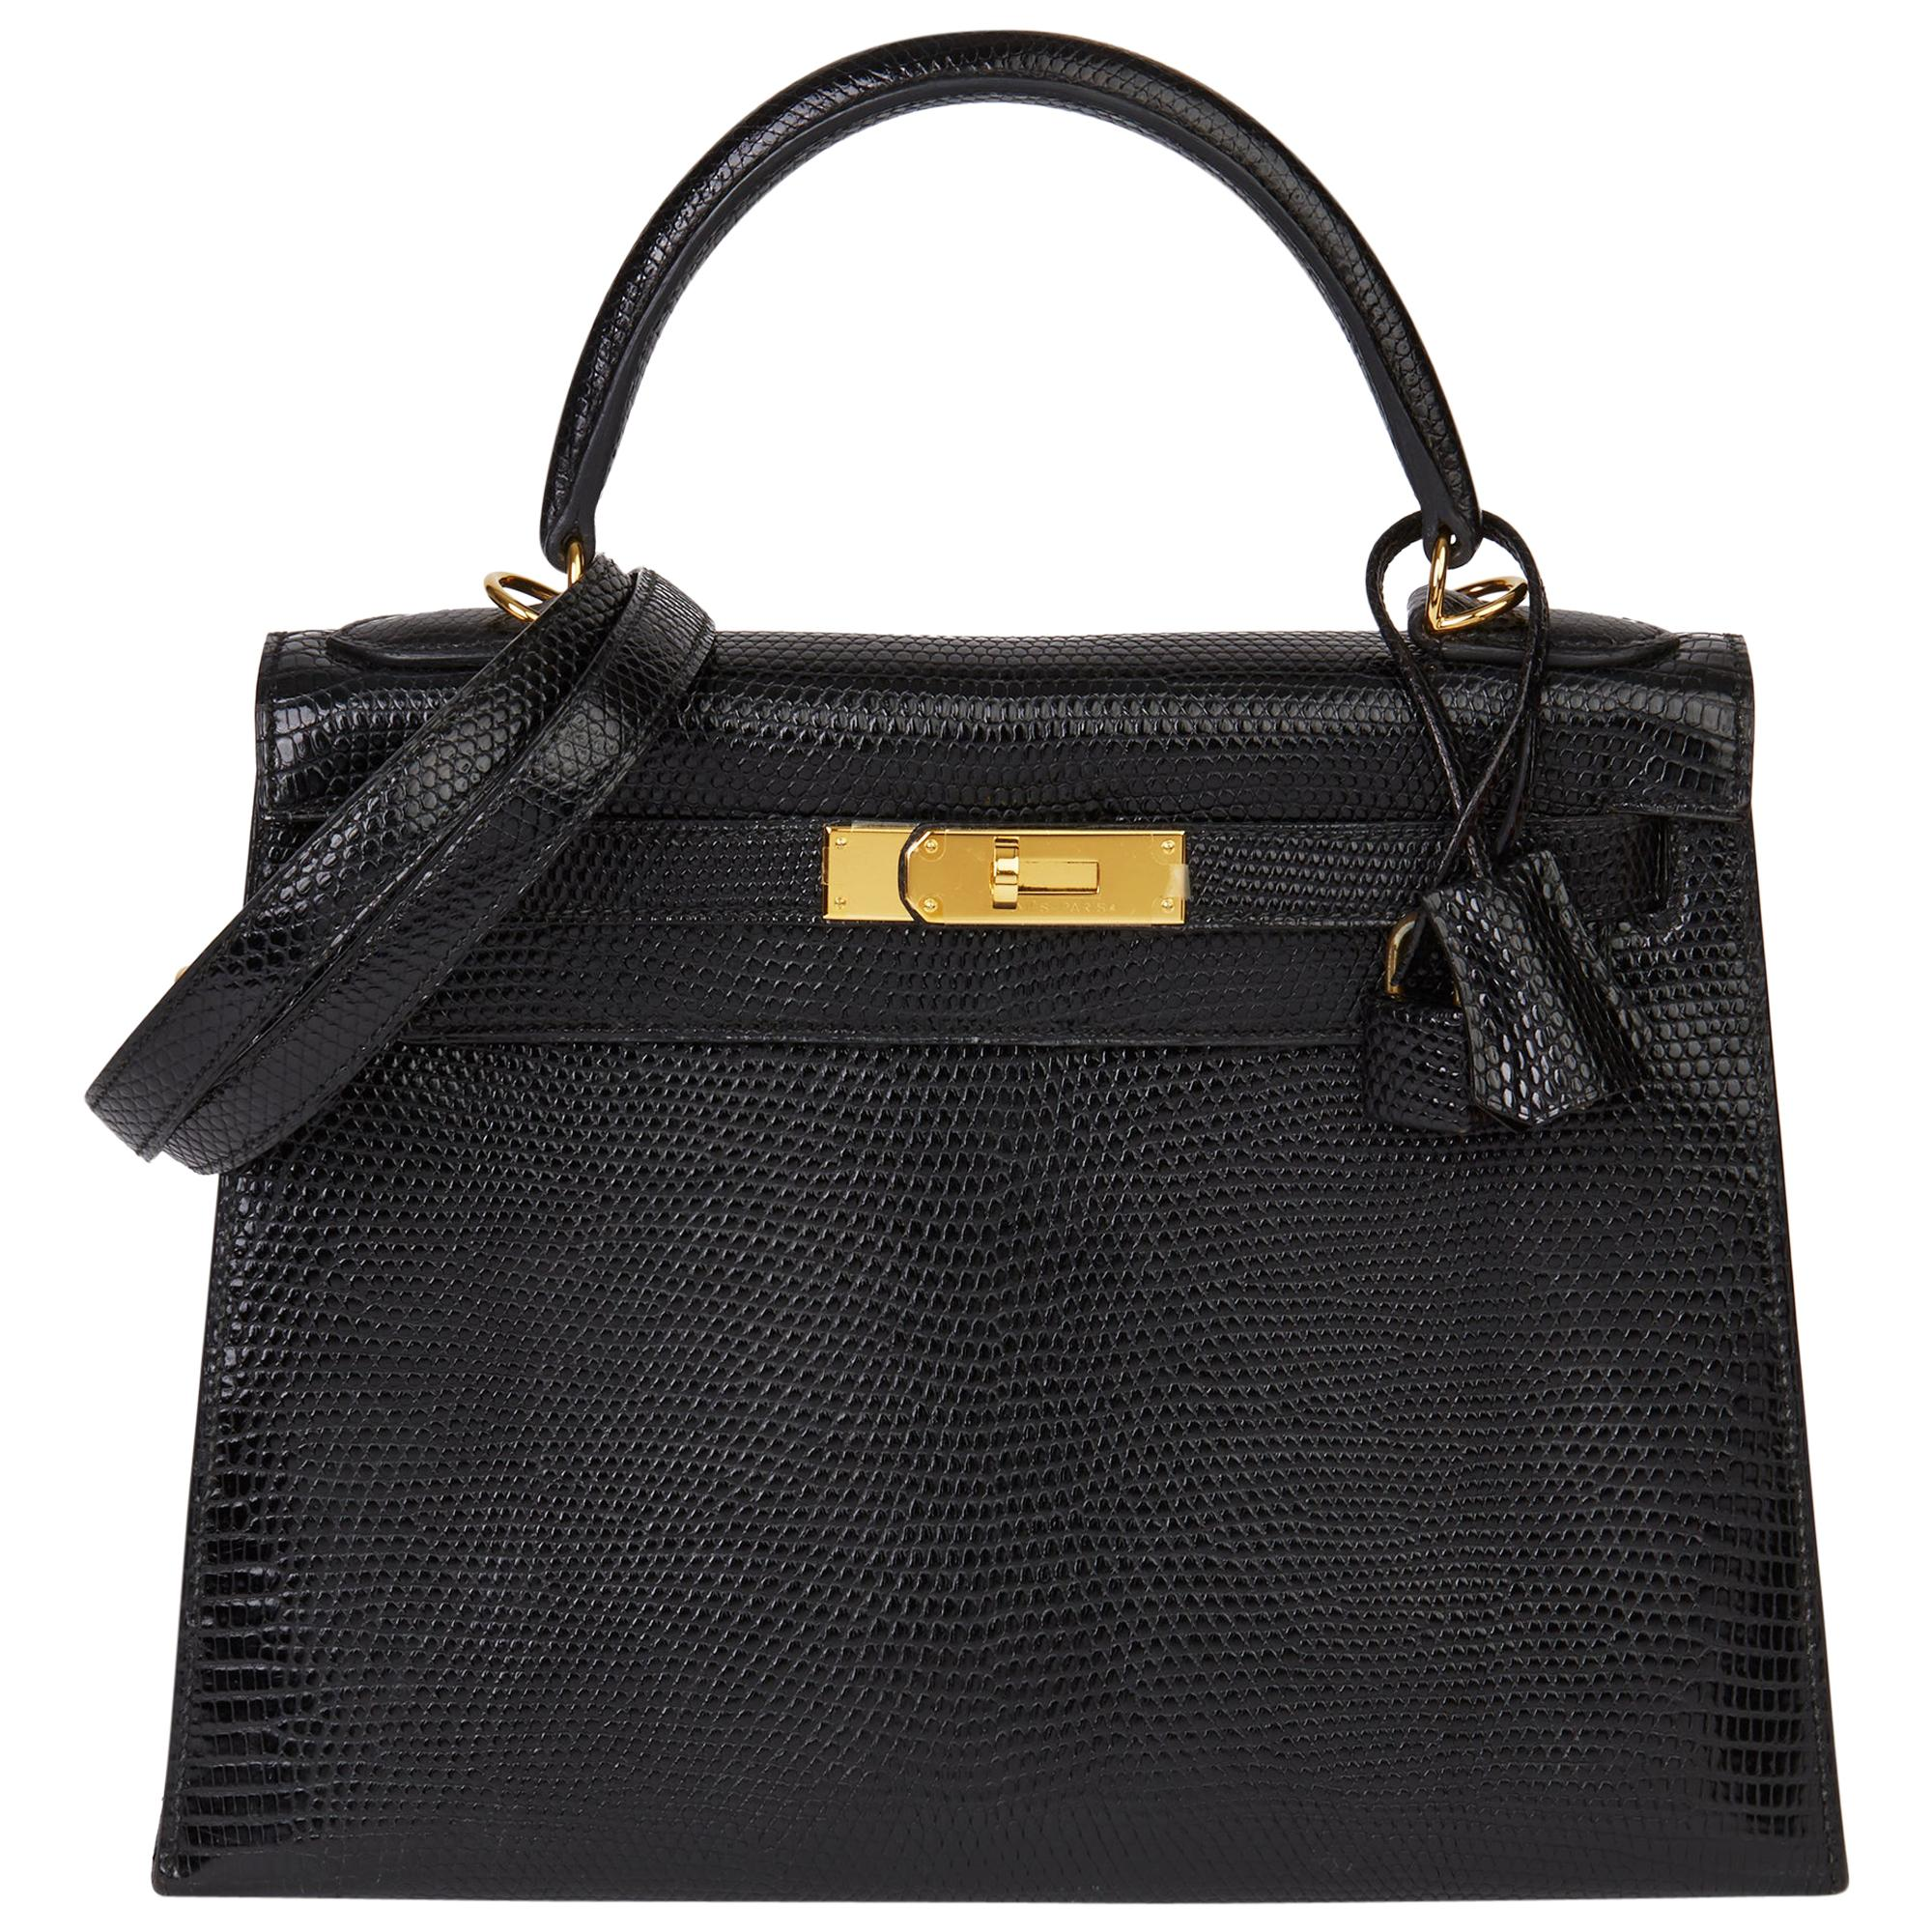 1990 Hermès Black Lizard Leather Vintage Kelly 28cm Sellier